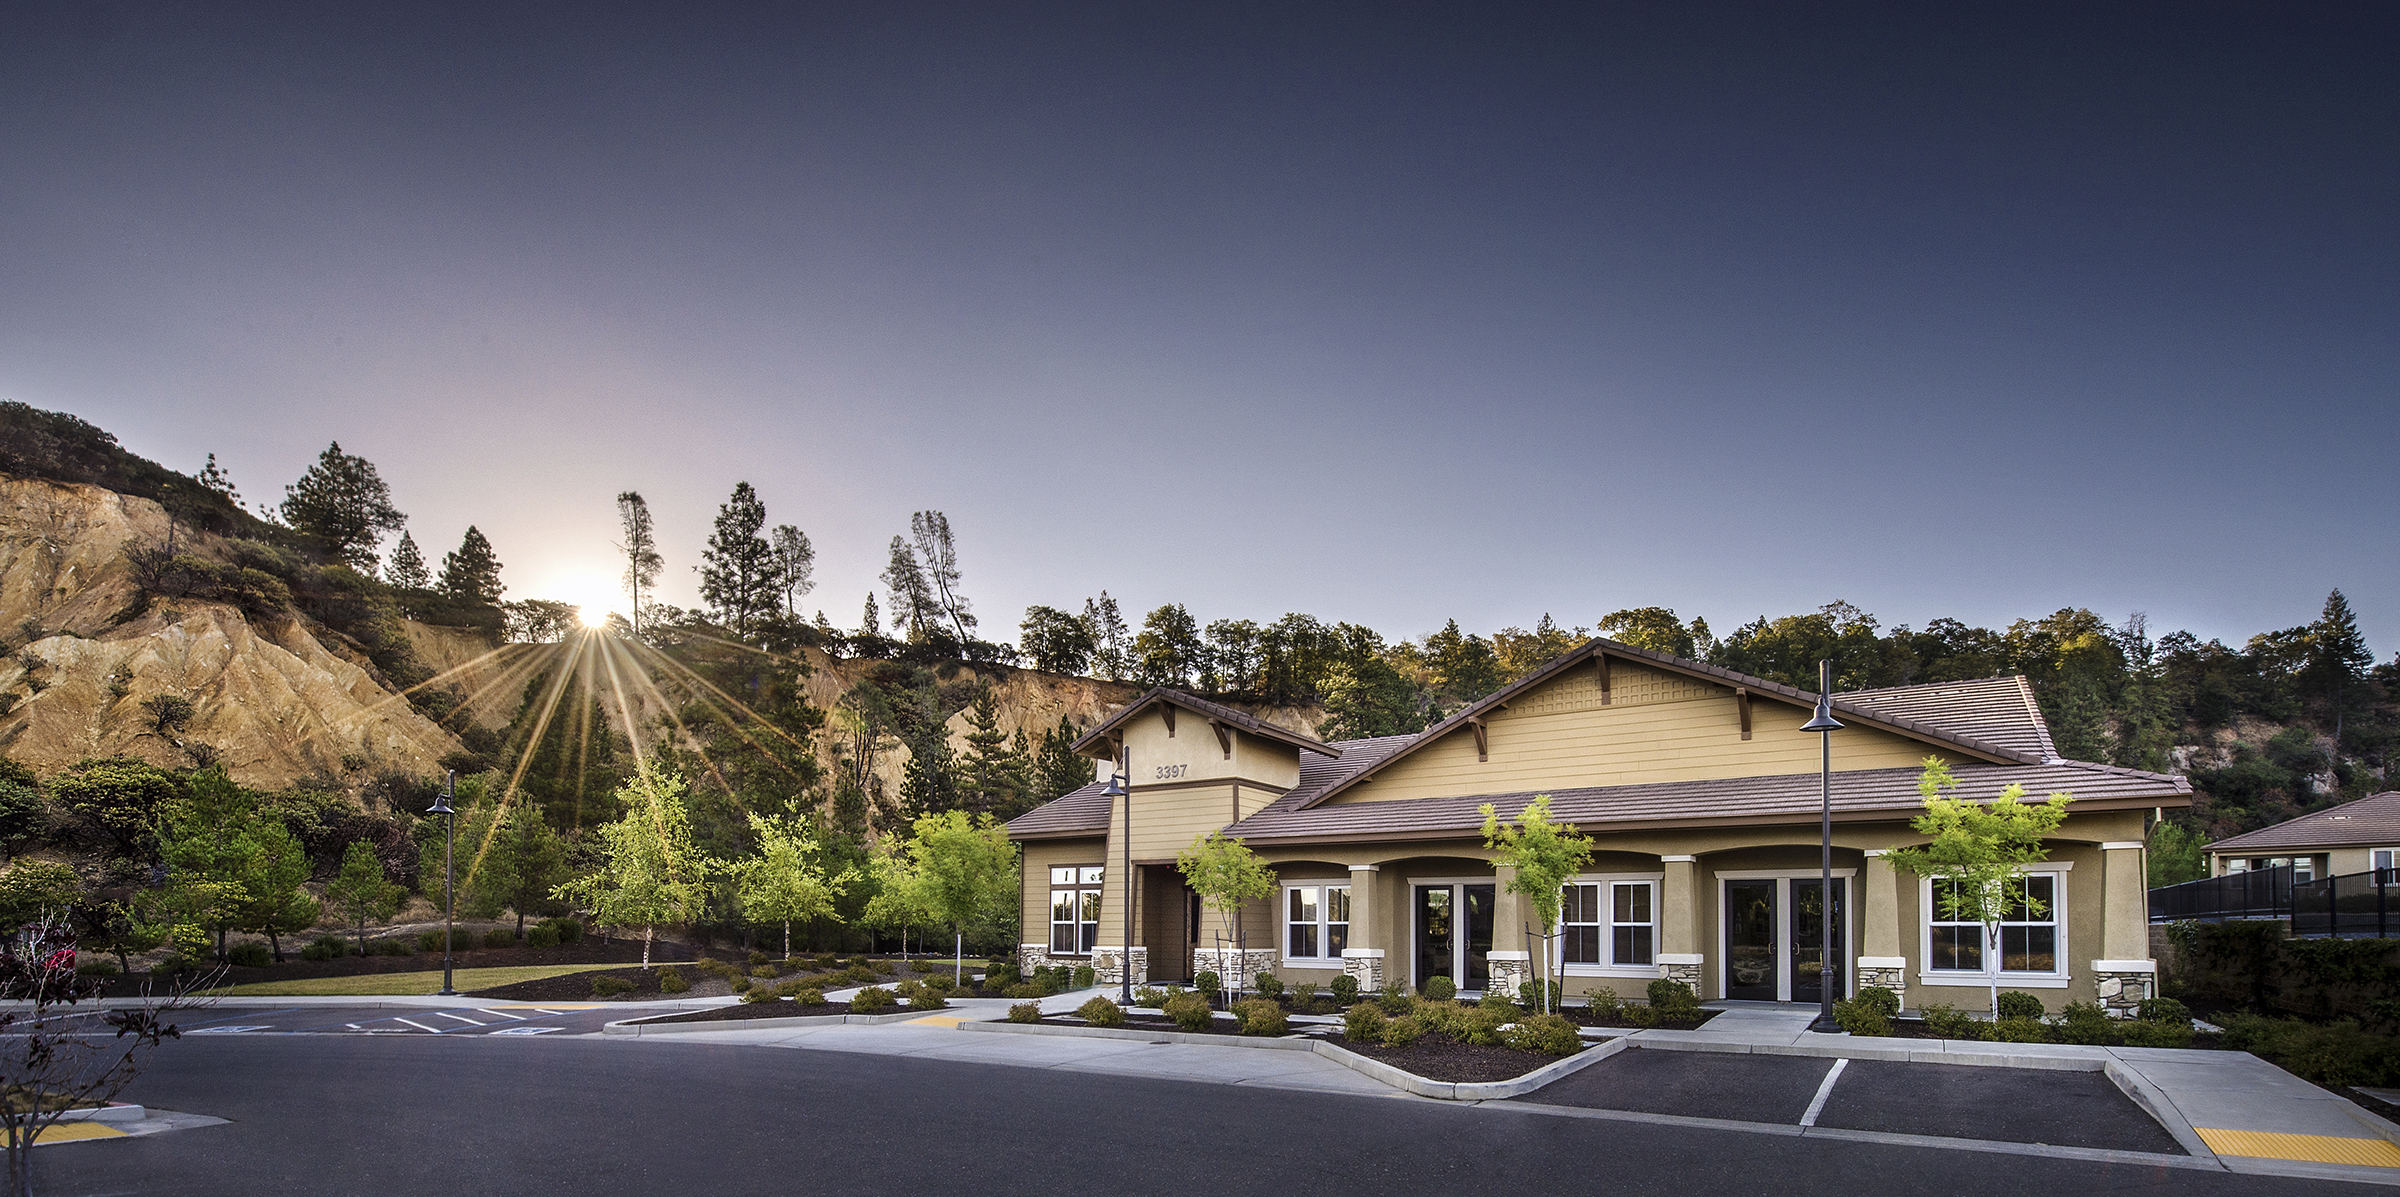 living in village Enjoy retirement at peace village, a senior living community offering independent and assisted living, memory care, and rehab located in palos park, il.